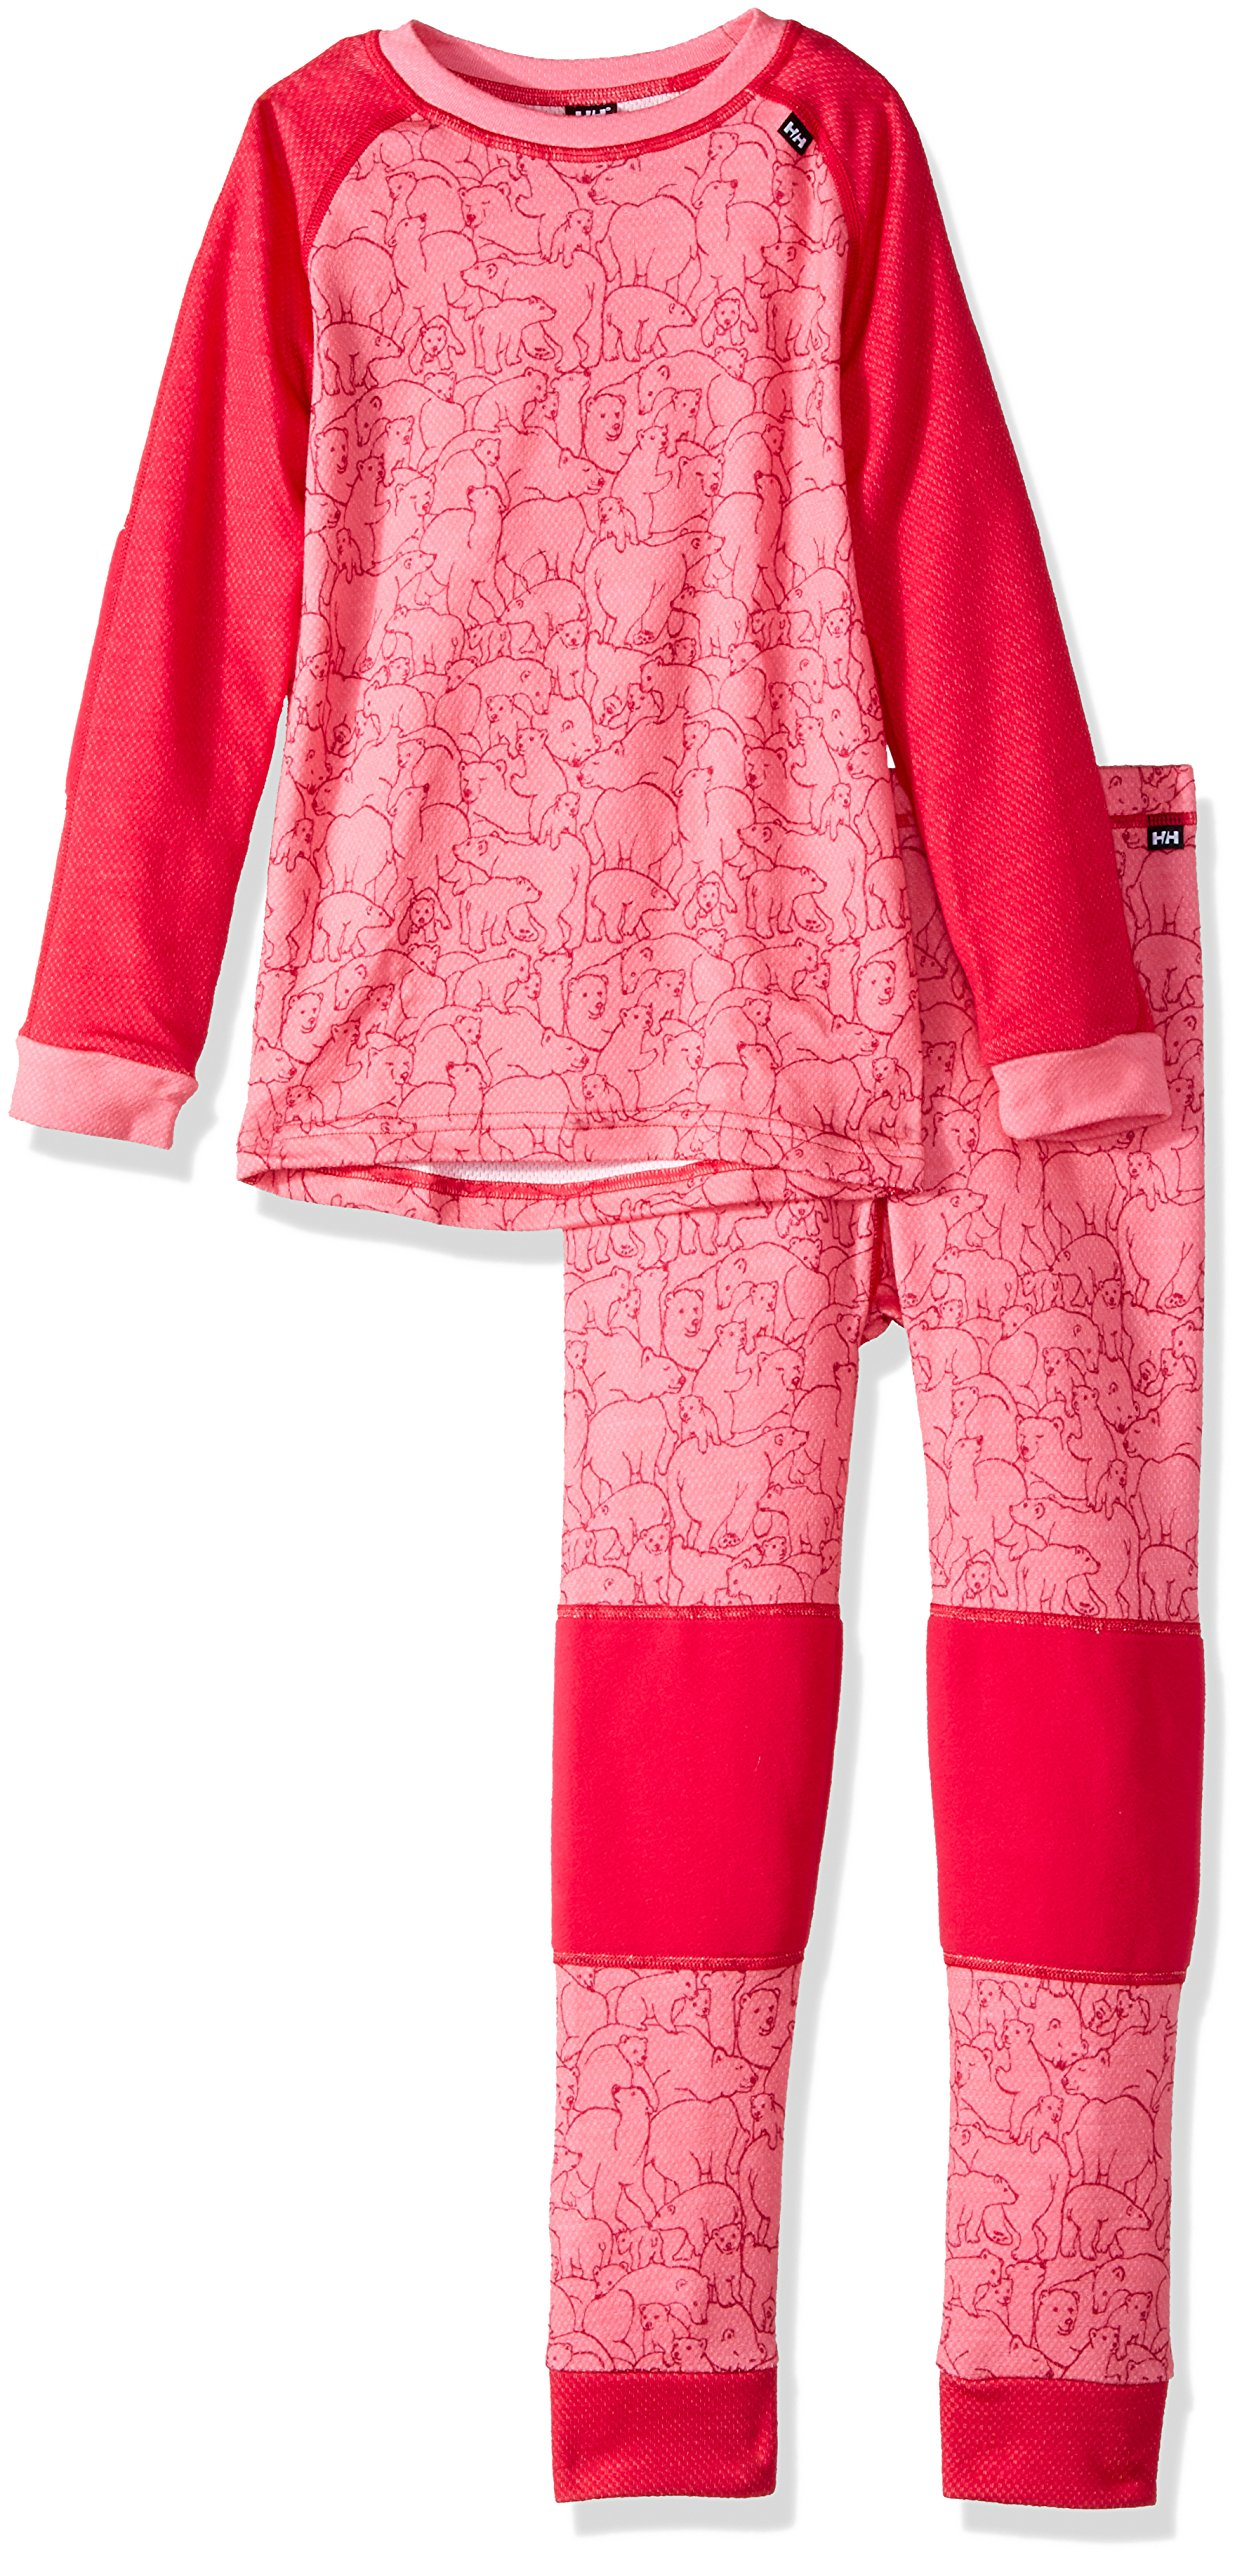 Helly Hansen Kids Lifa Merino Wool Warm Baselayer Set Top and Bottom, 127 Bright Rose, Size 2